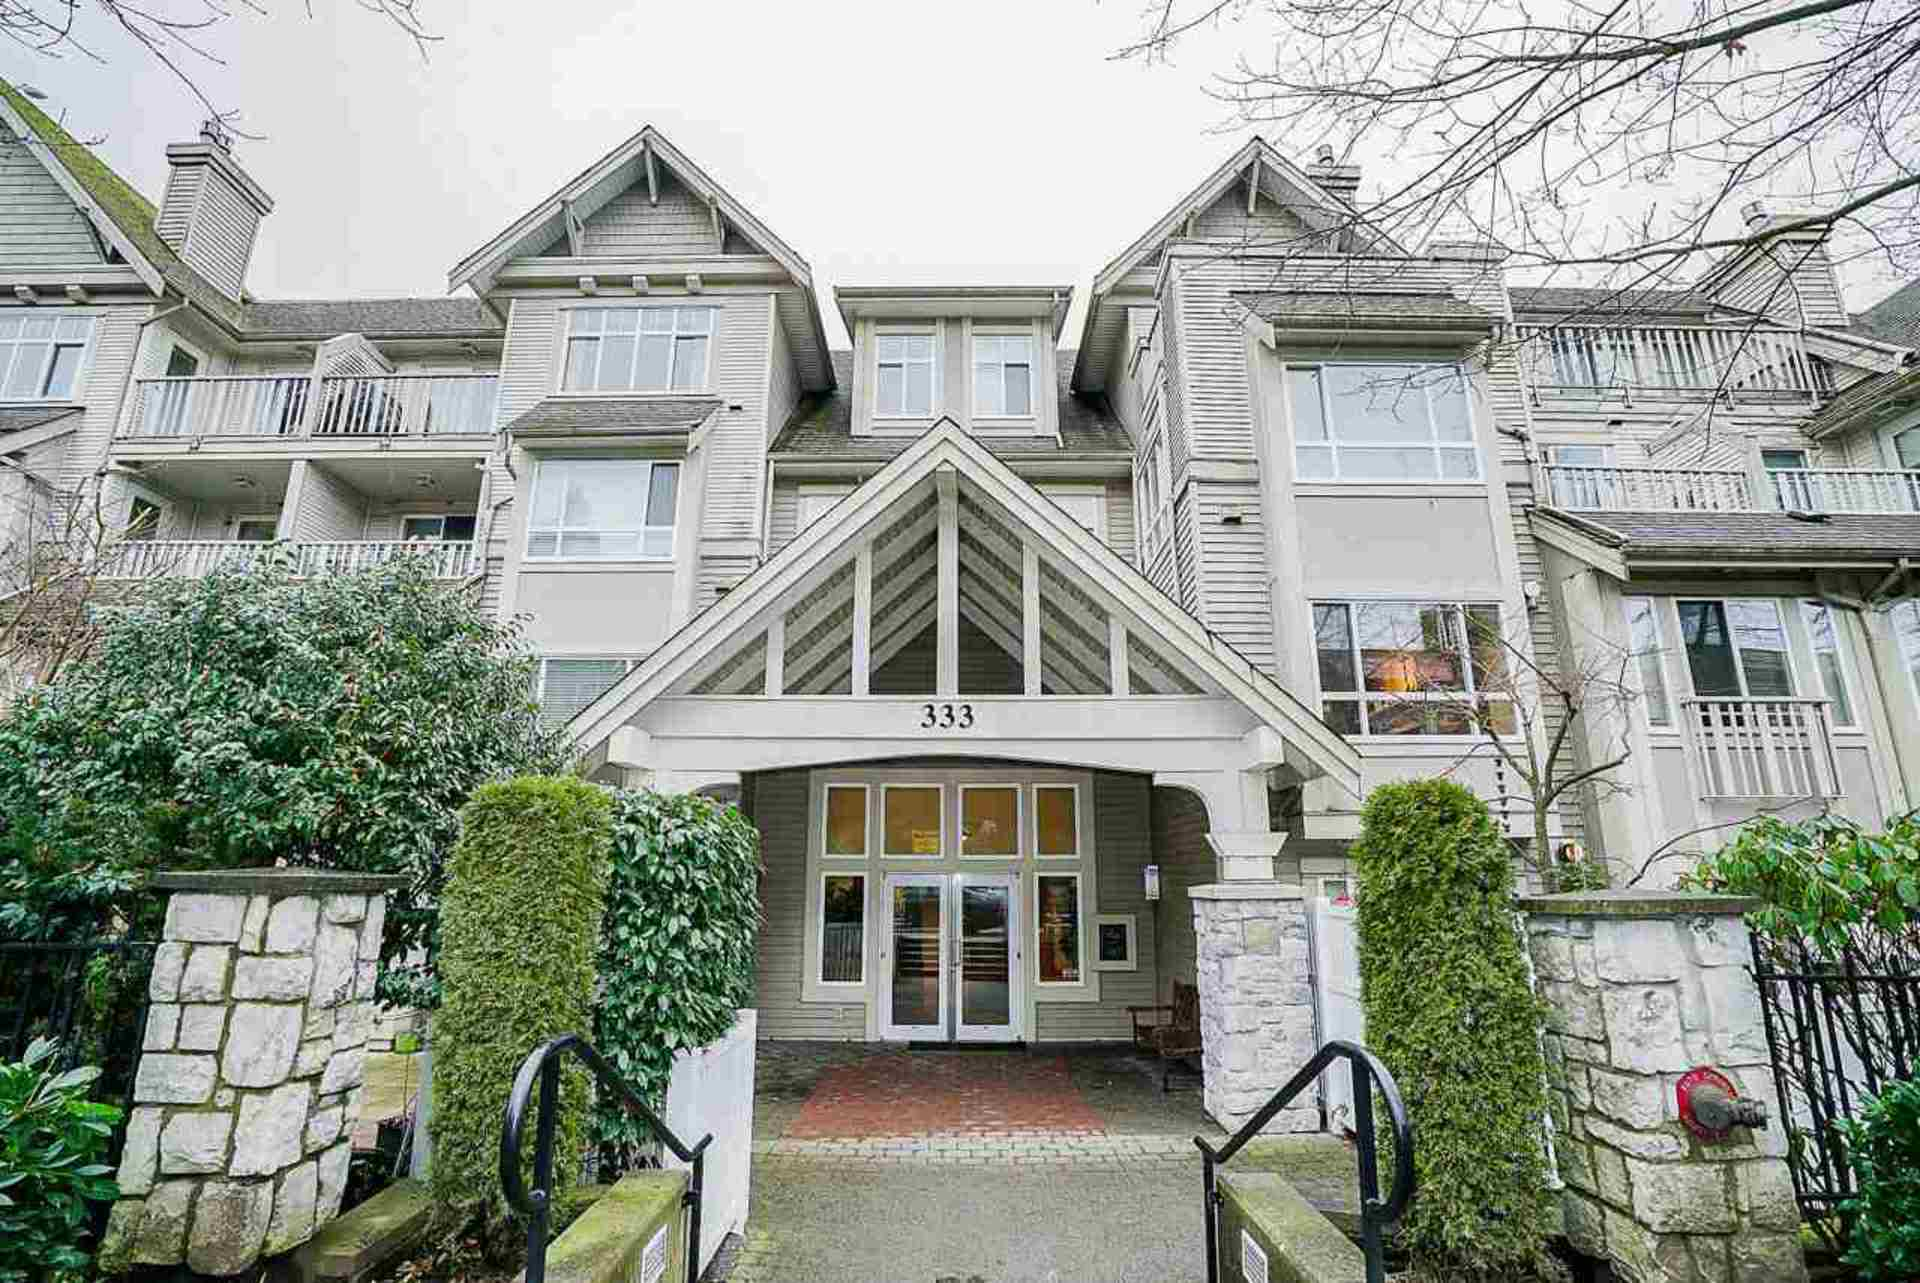 333-e-1st-street-lower-lonsdale-north-vancouver-16 at 401 - 333 E 1st Street, Lower Lonsdale, North Vancouver